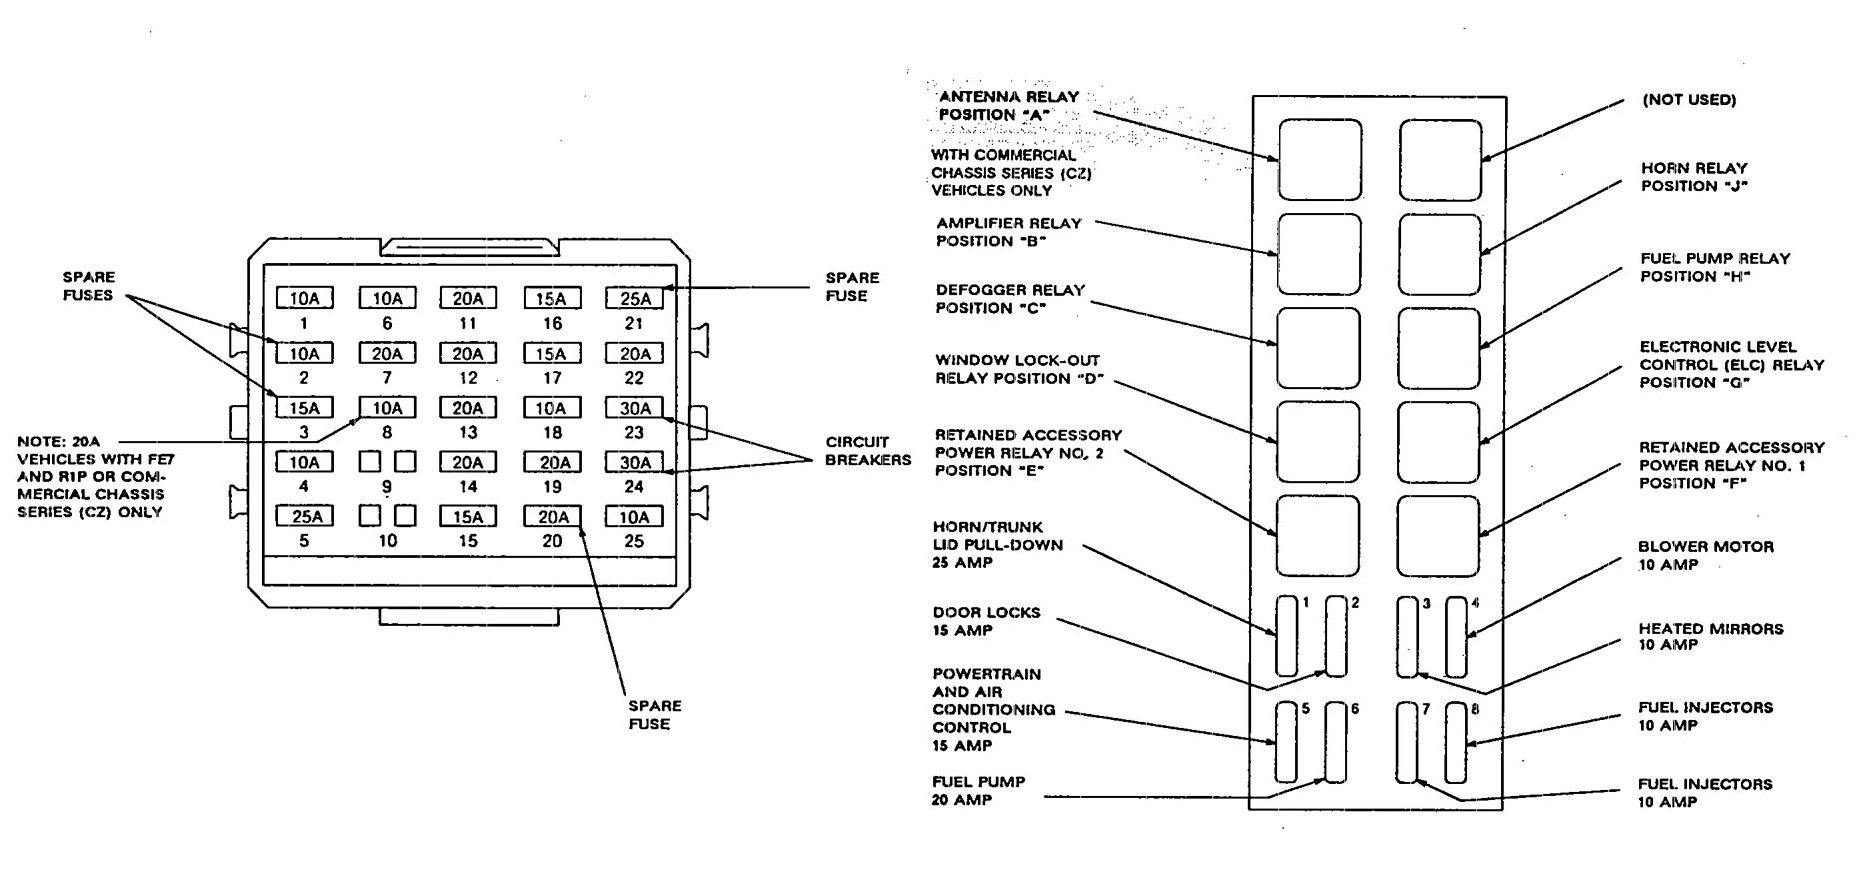 [DIAGRAM_3ER]  DIAGRAM] Buick Roadmaster Fuse Box Diagram FULL Version HD Quality Box  Diagram - TNBFUSE7949.ITCMOLARI.IT | Buick Roadmaster Fuse Box Location |  | tnbfuse7949.itcmolari.it